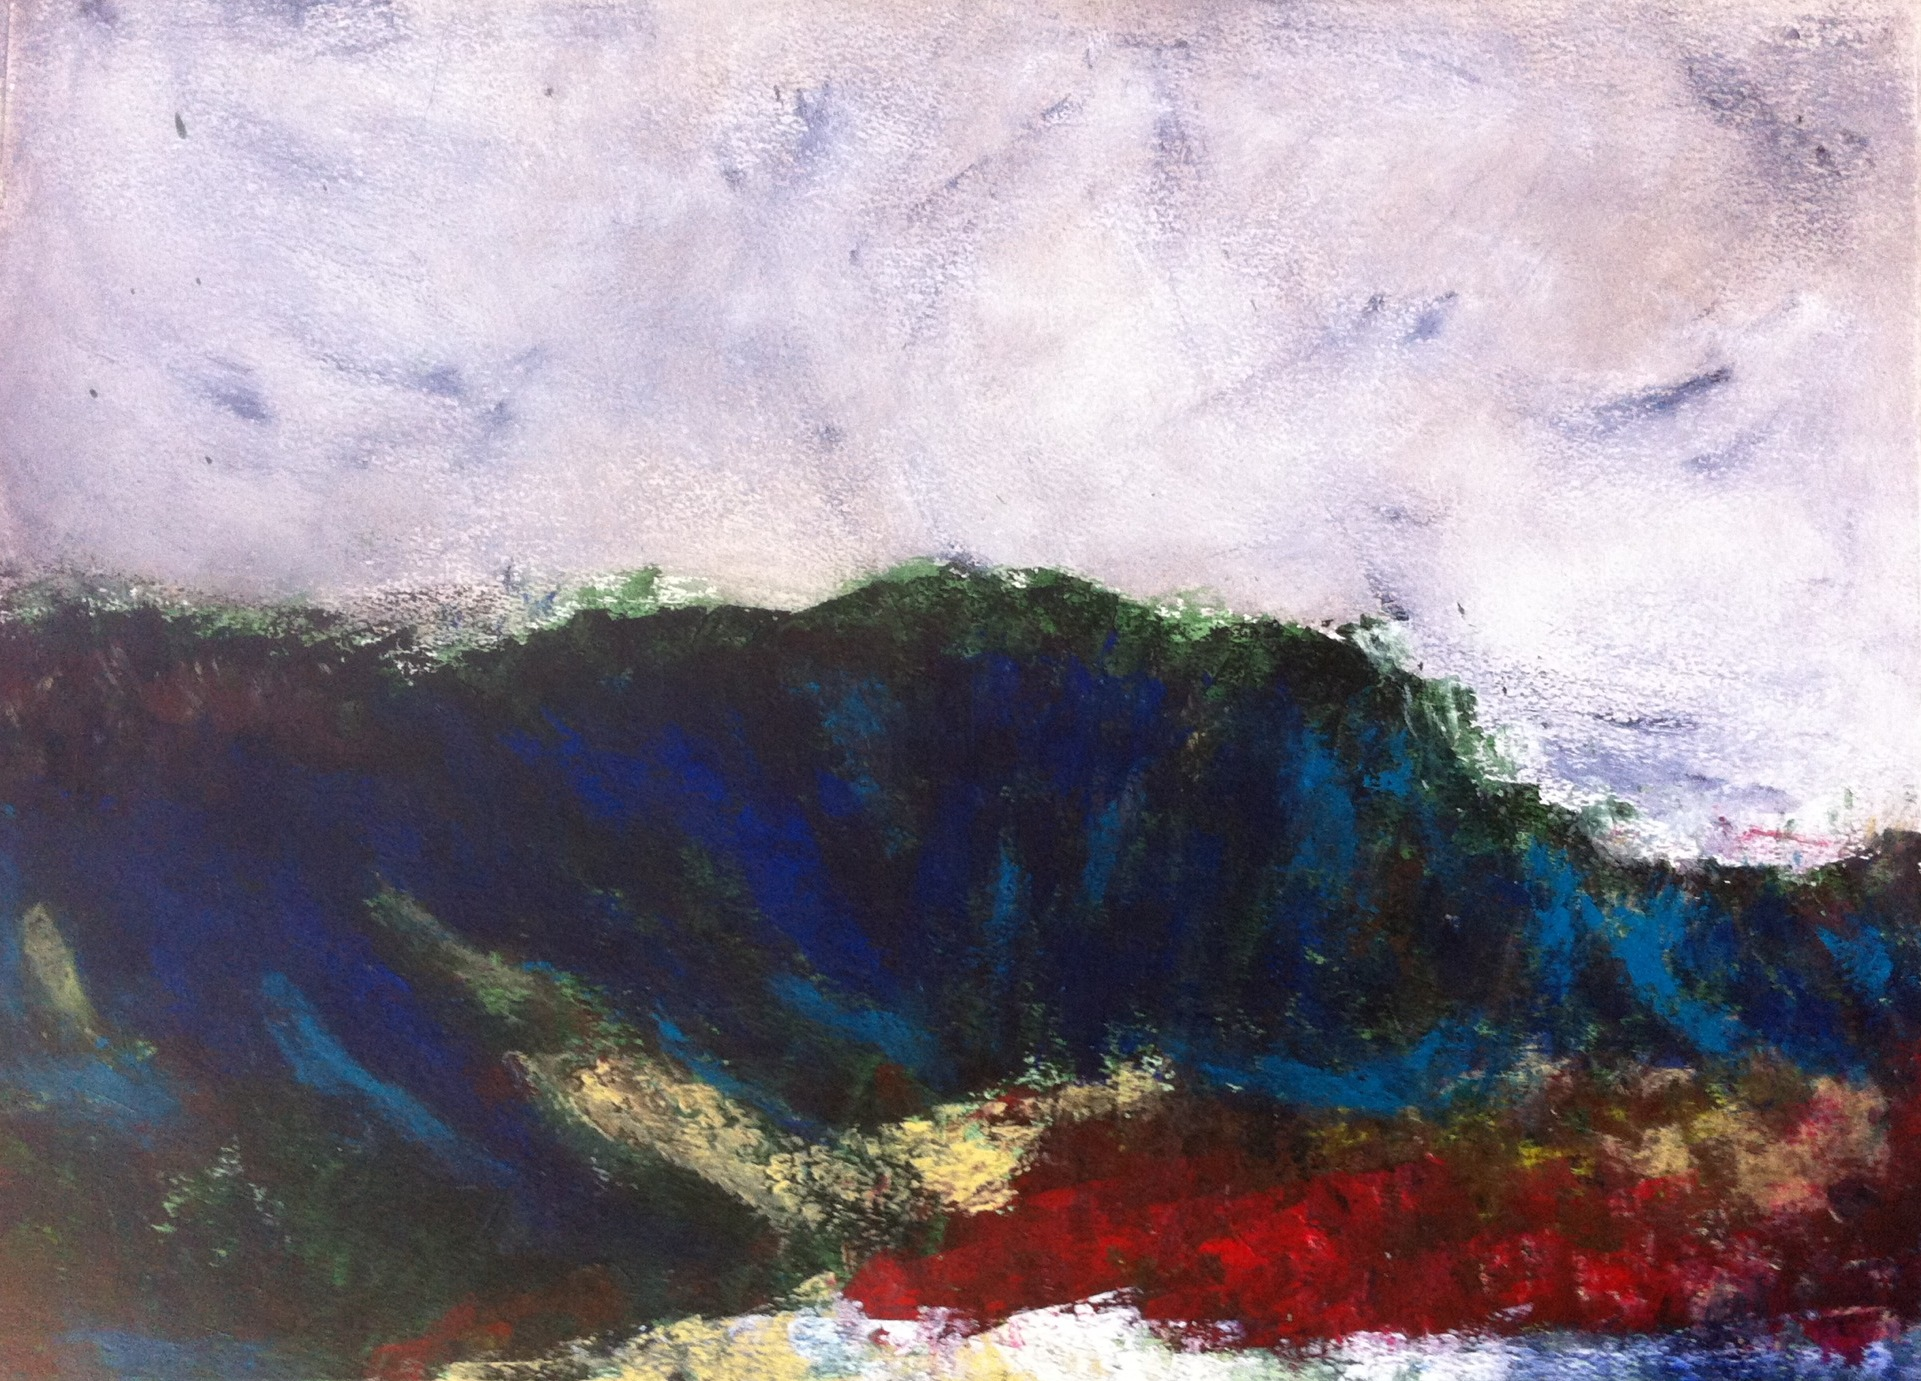 N° 763 - Blue mountain - Acrylique sur papier - 53,5 x 73,5 cm - 29 octobre 2013